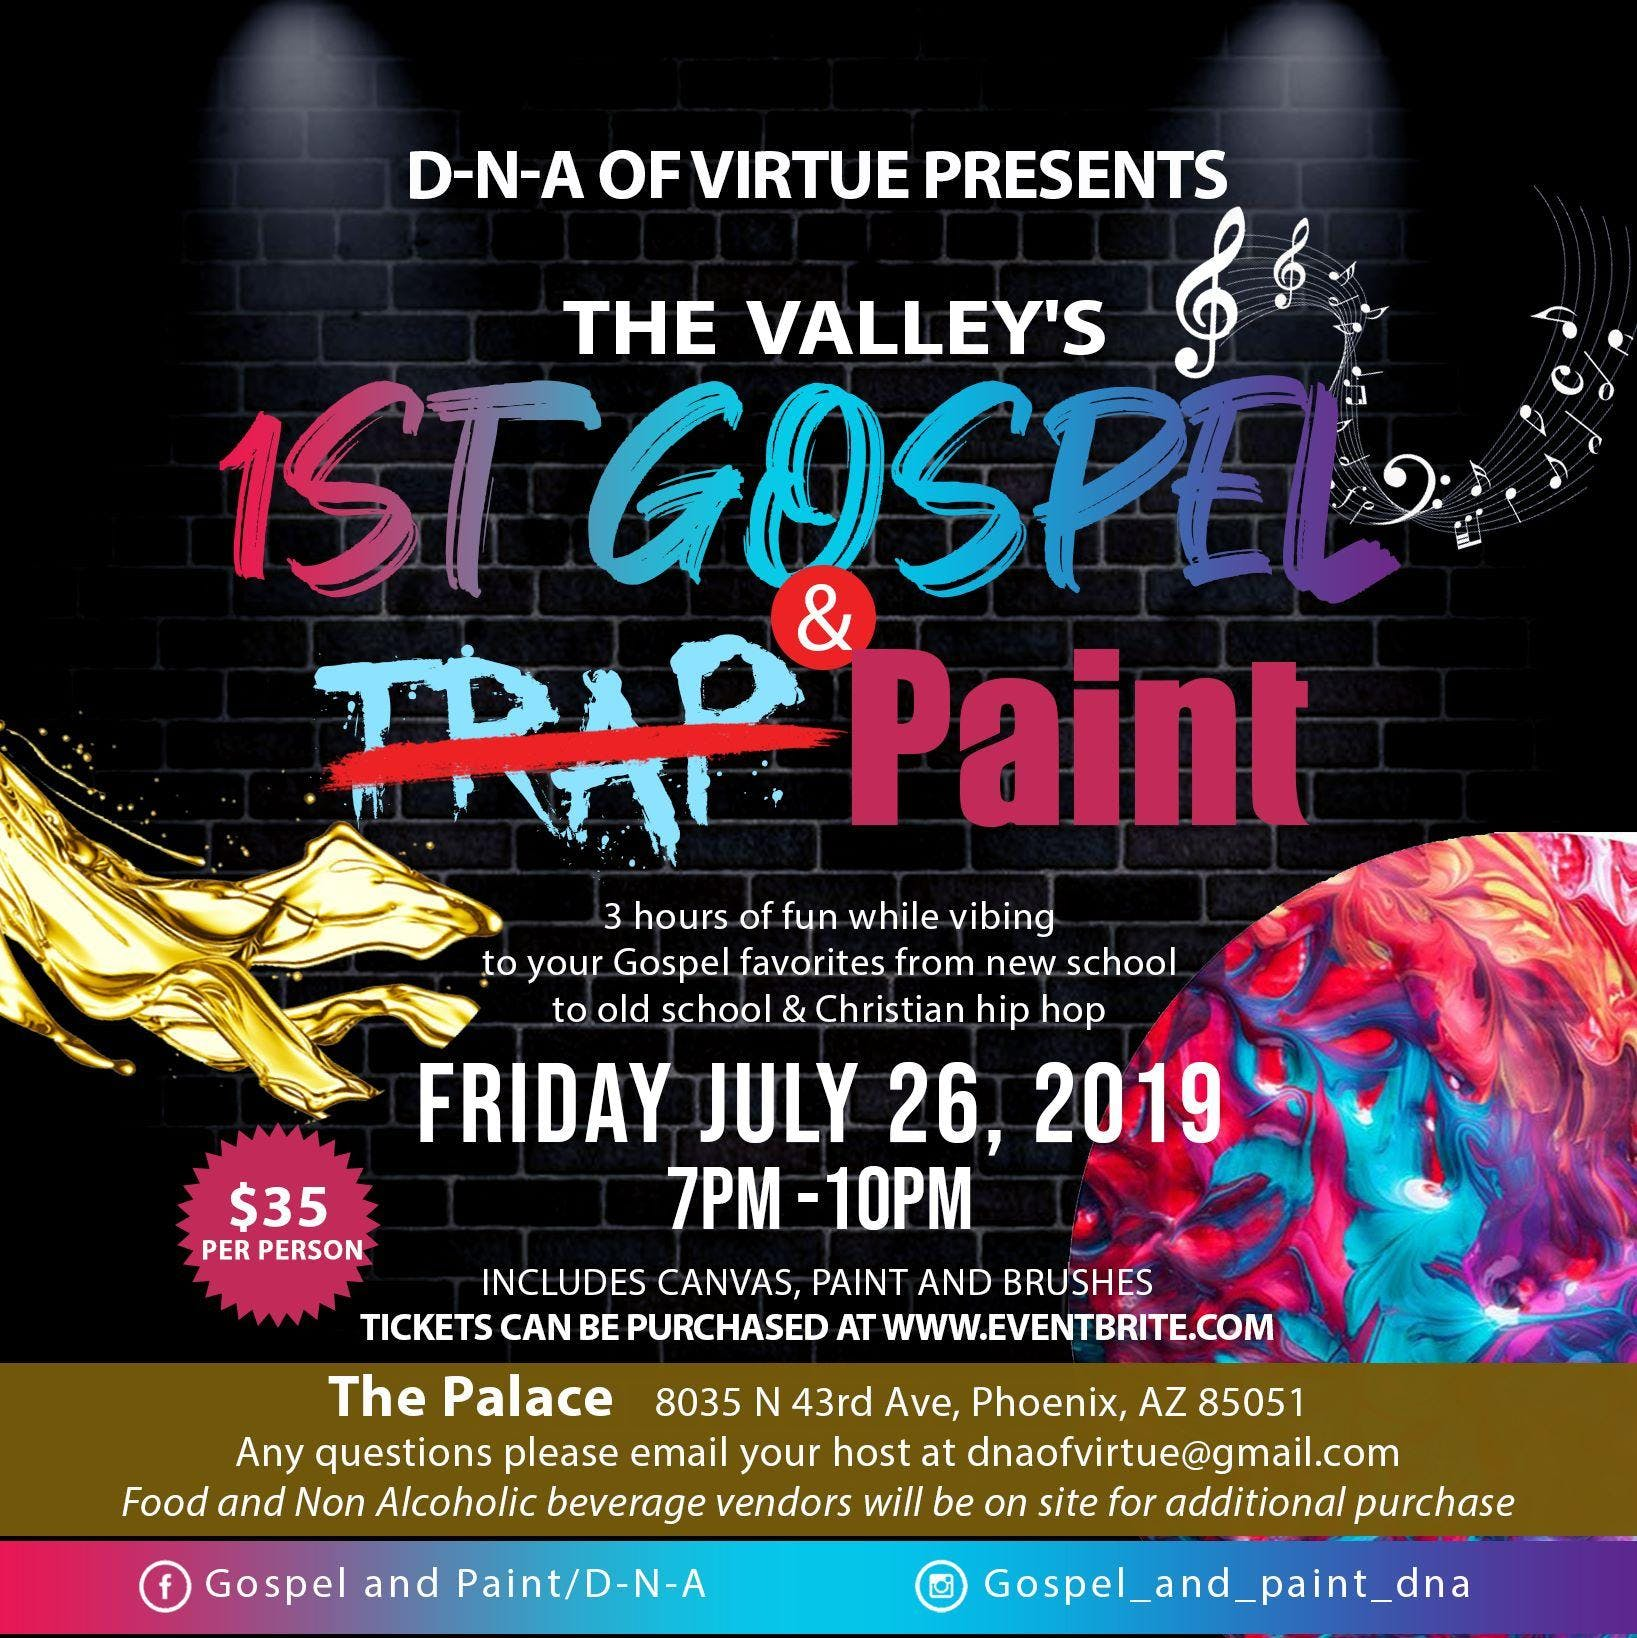 Gospel and paint